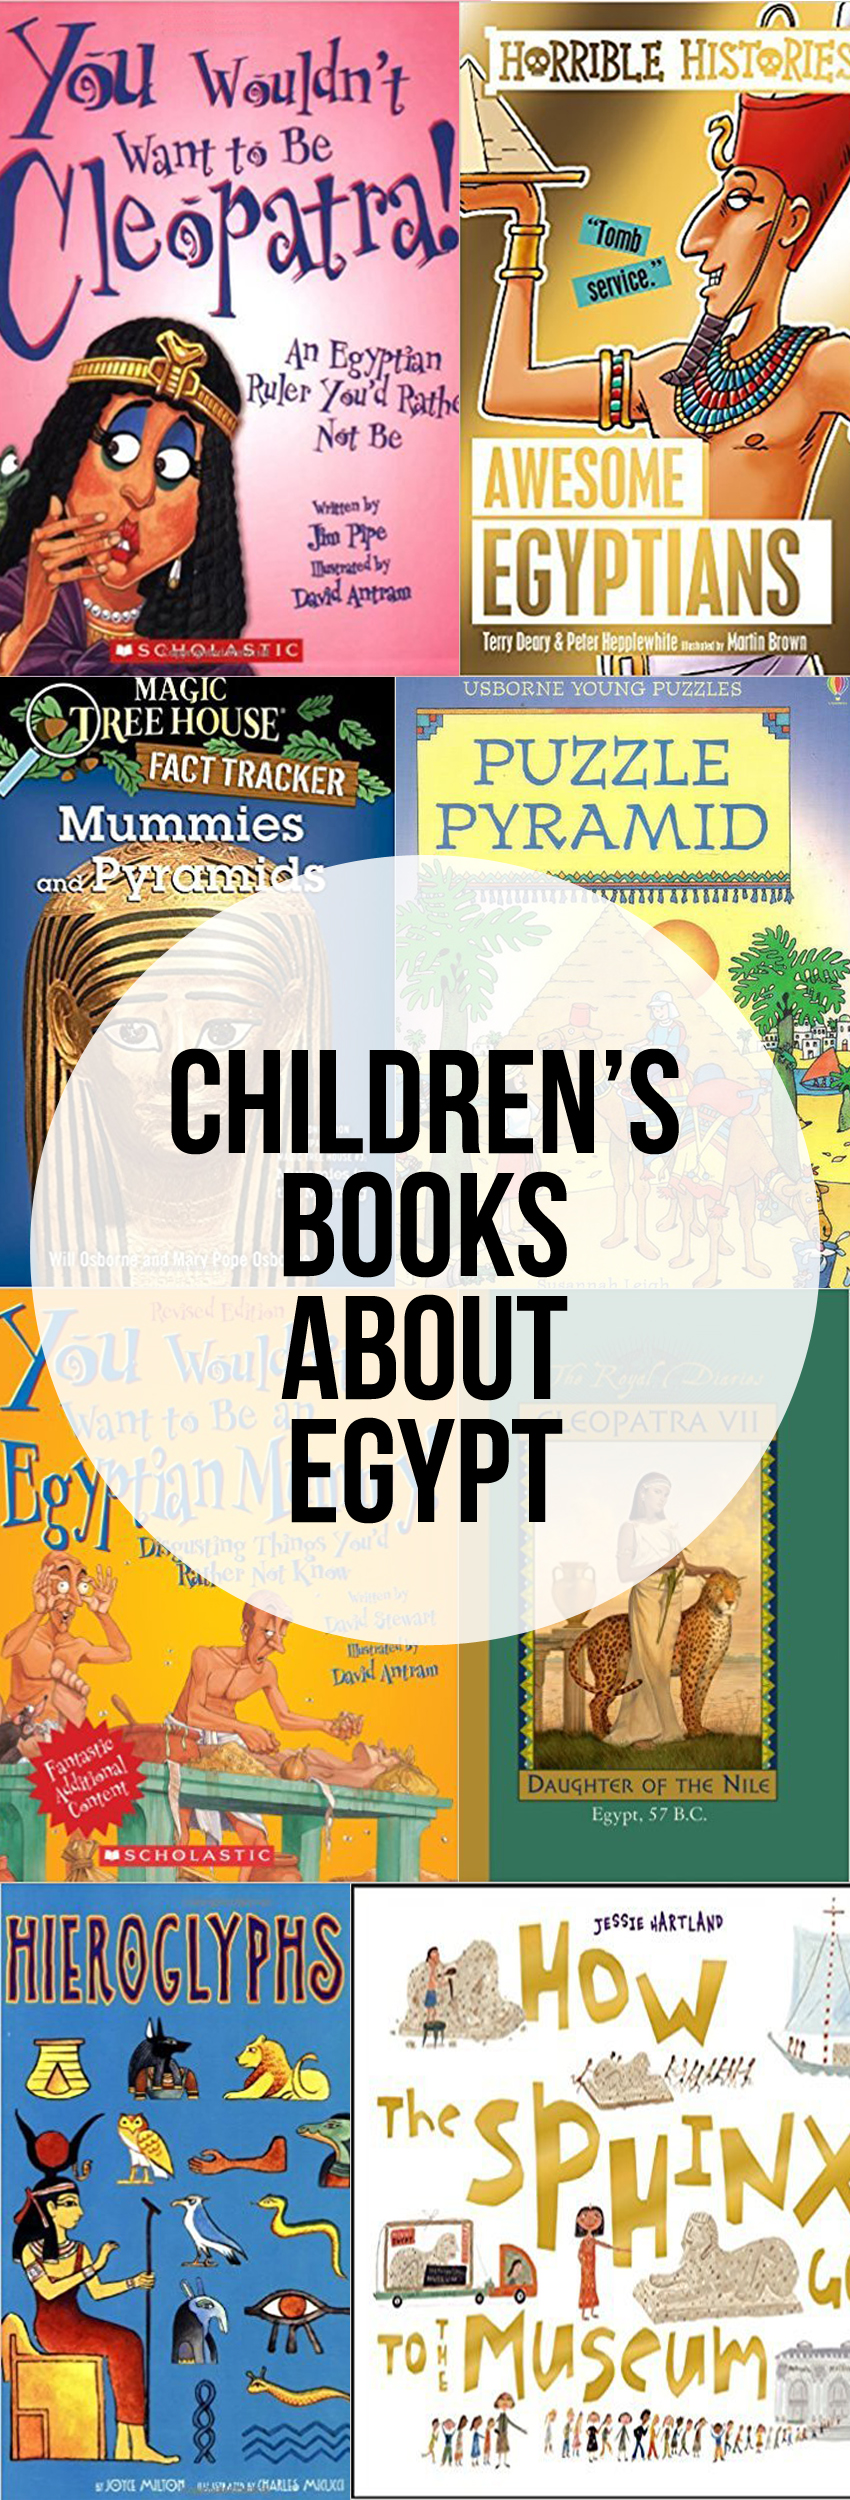 Children's Books About Egypt